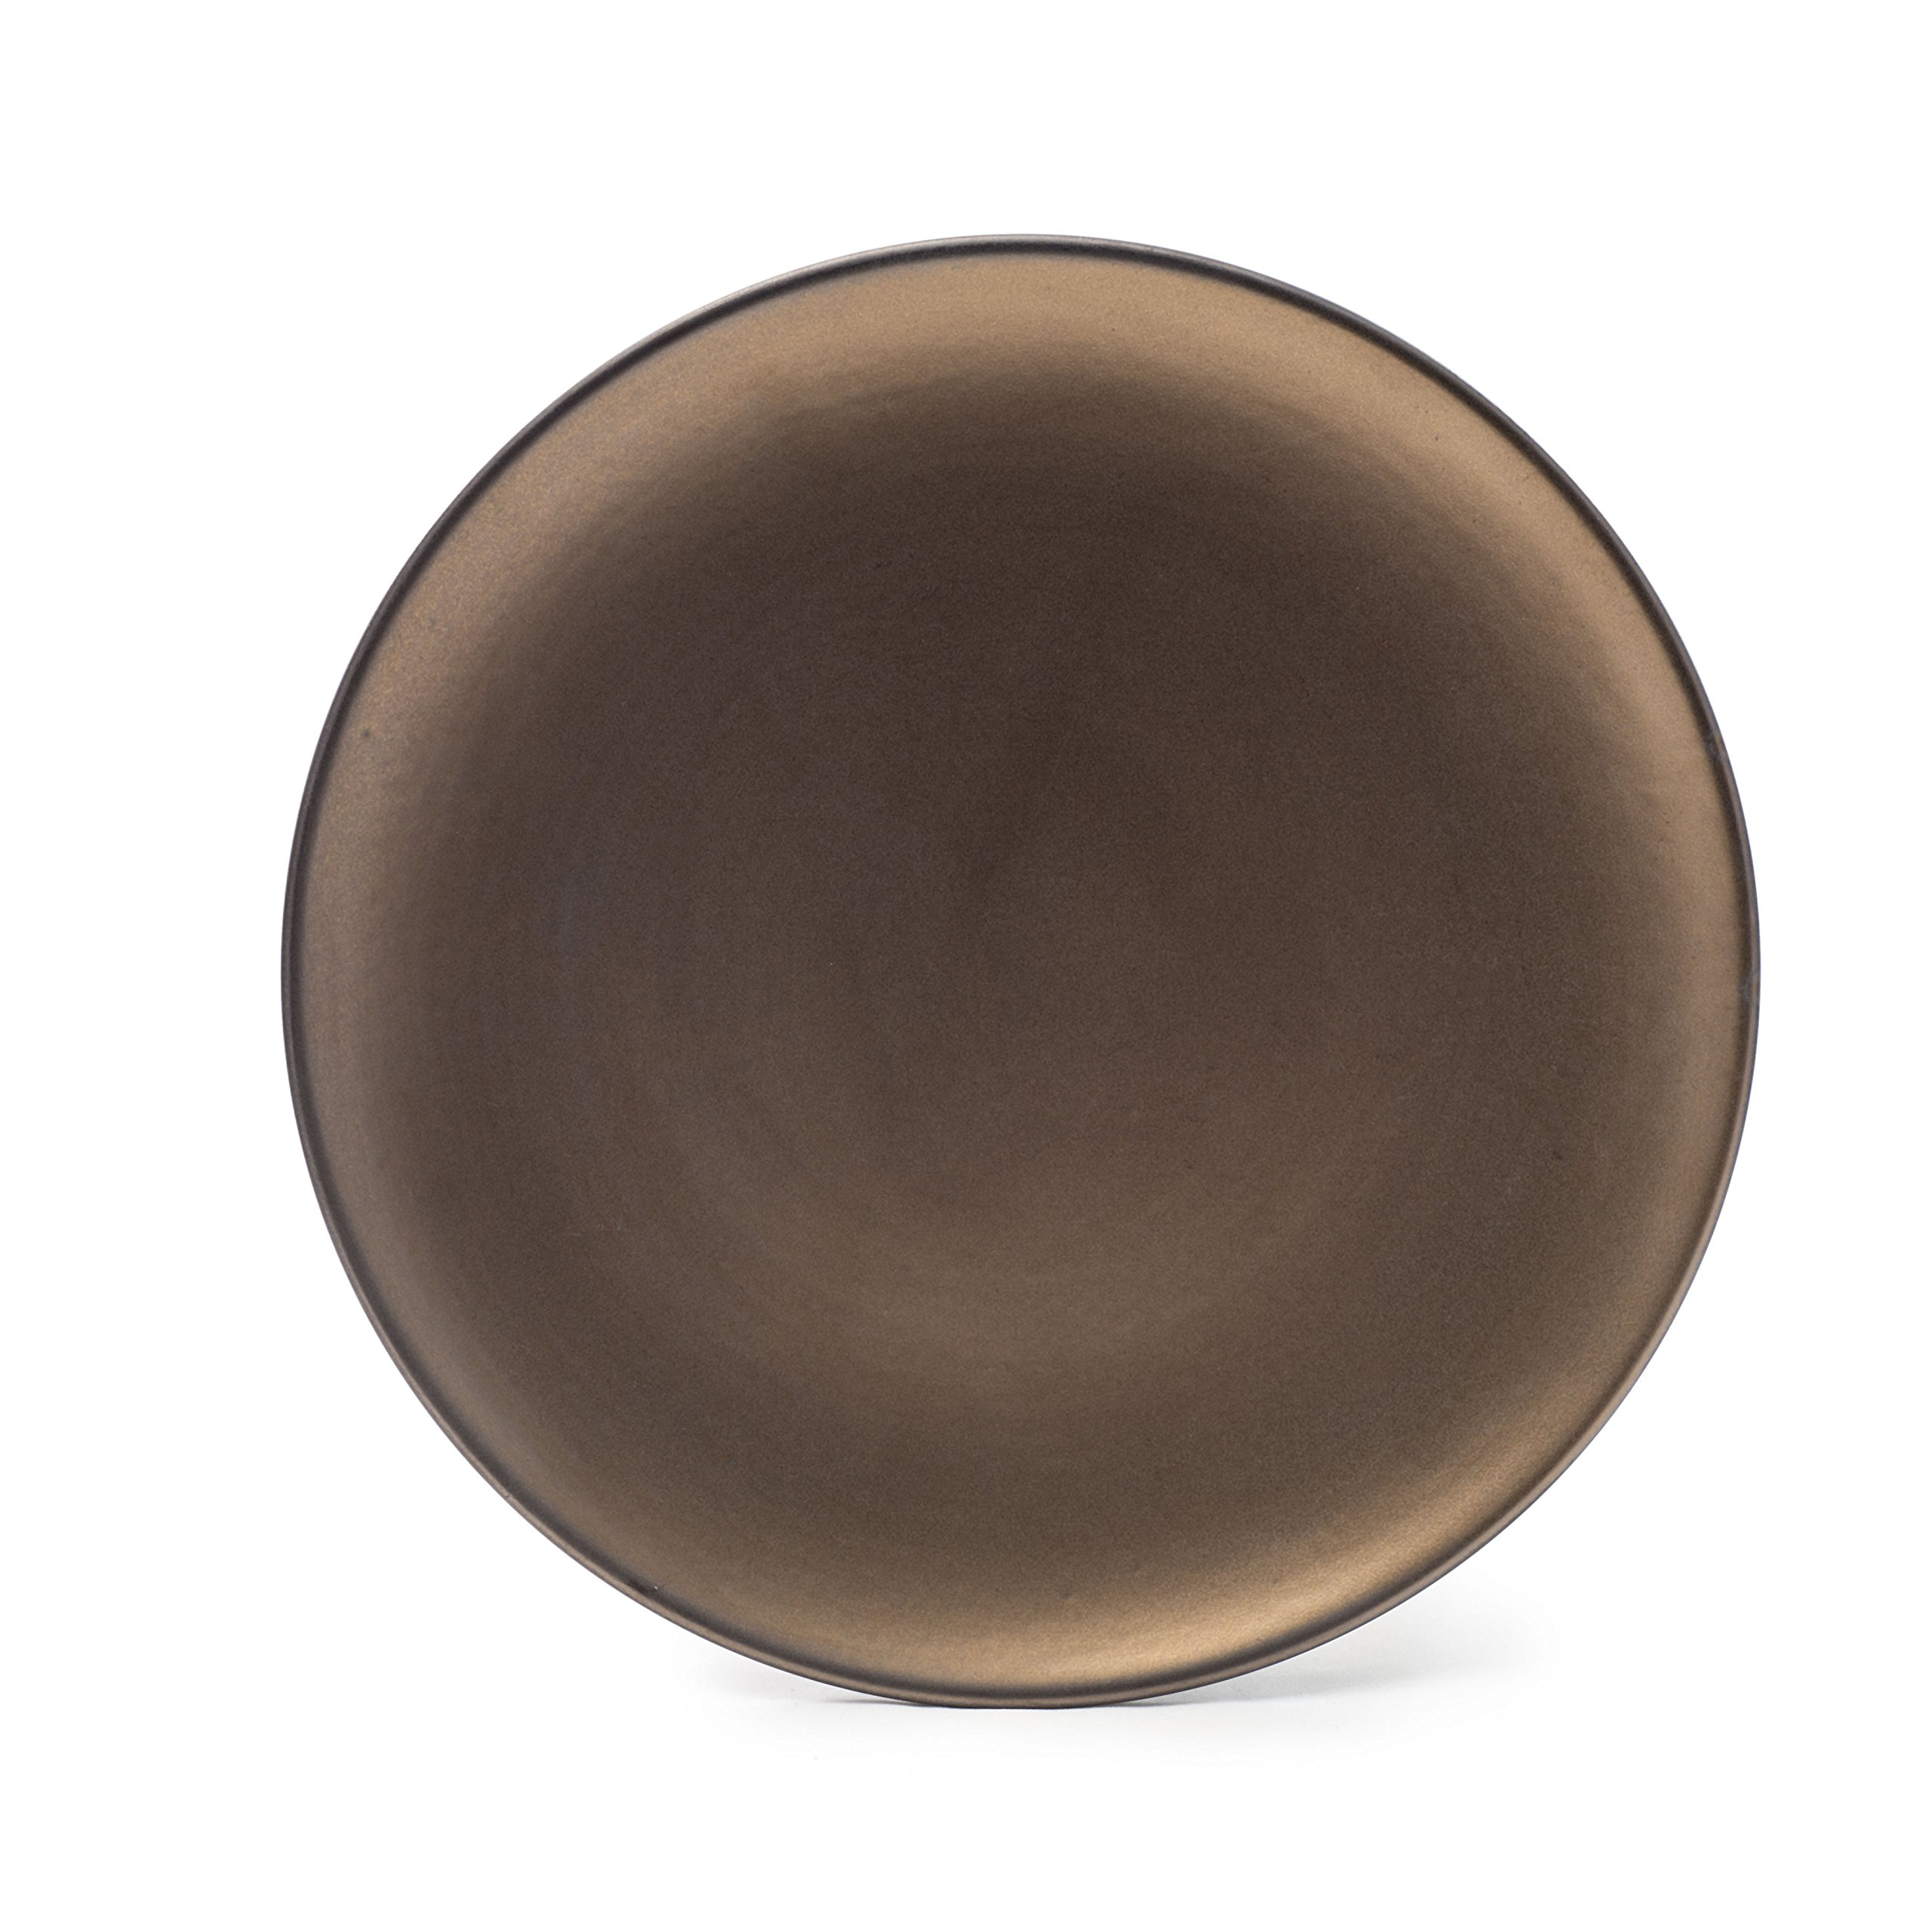 Tablescapes ME52957-16PC 16 Piece Teton Dinnerware Set, Rubbed Gold by Tablescapes (Image #5)